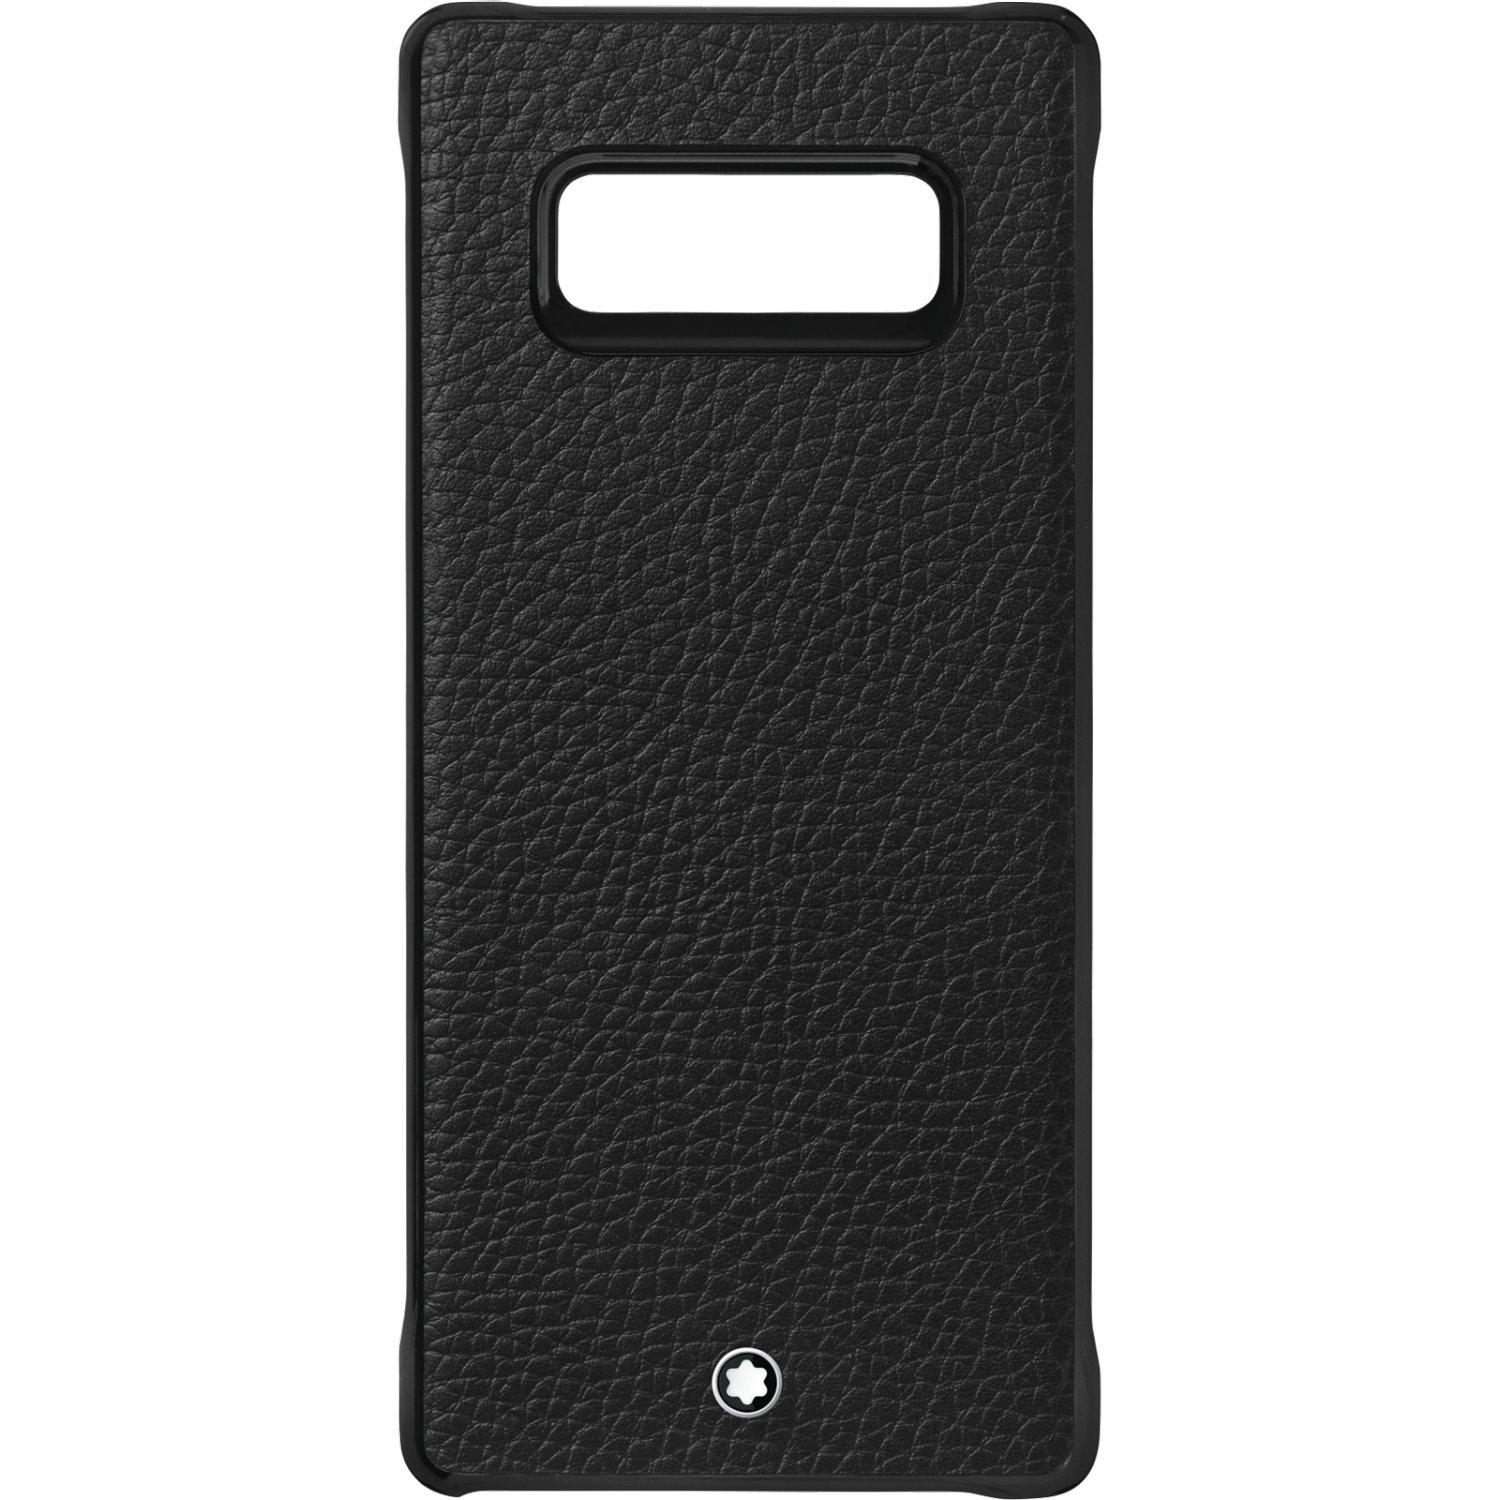 Genuine Official Montblanc Soft Grain Leather Hard Shell Back Cover Case Meisterstuck 119104 for Samsung Galaxy Note 8 (SM-N950)